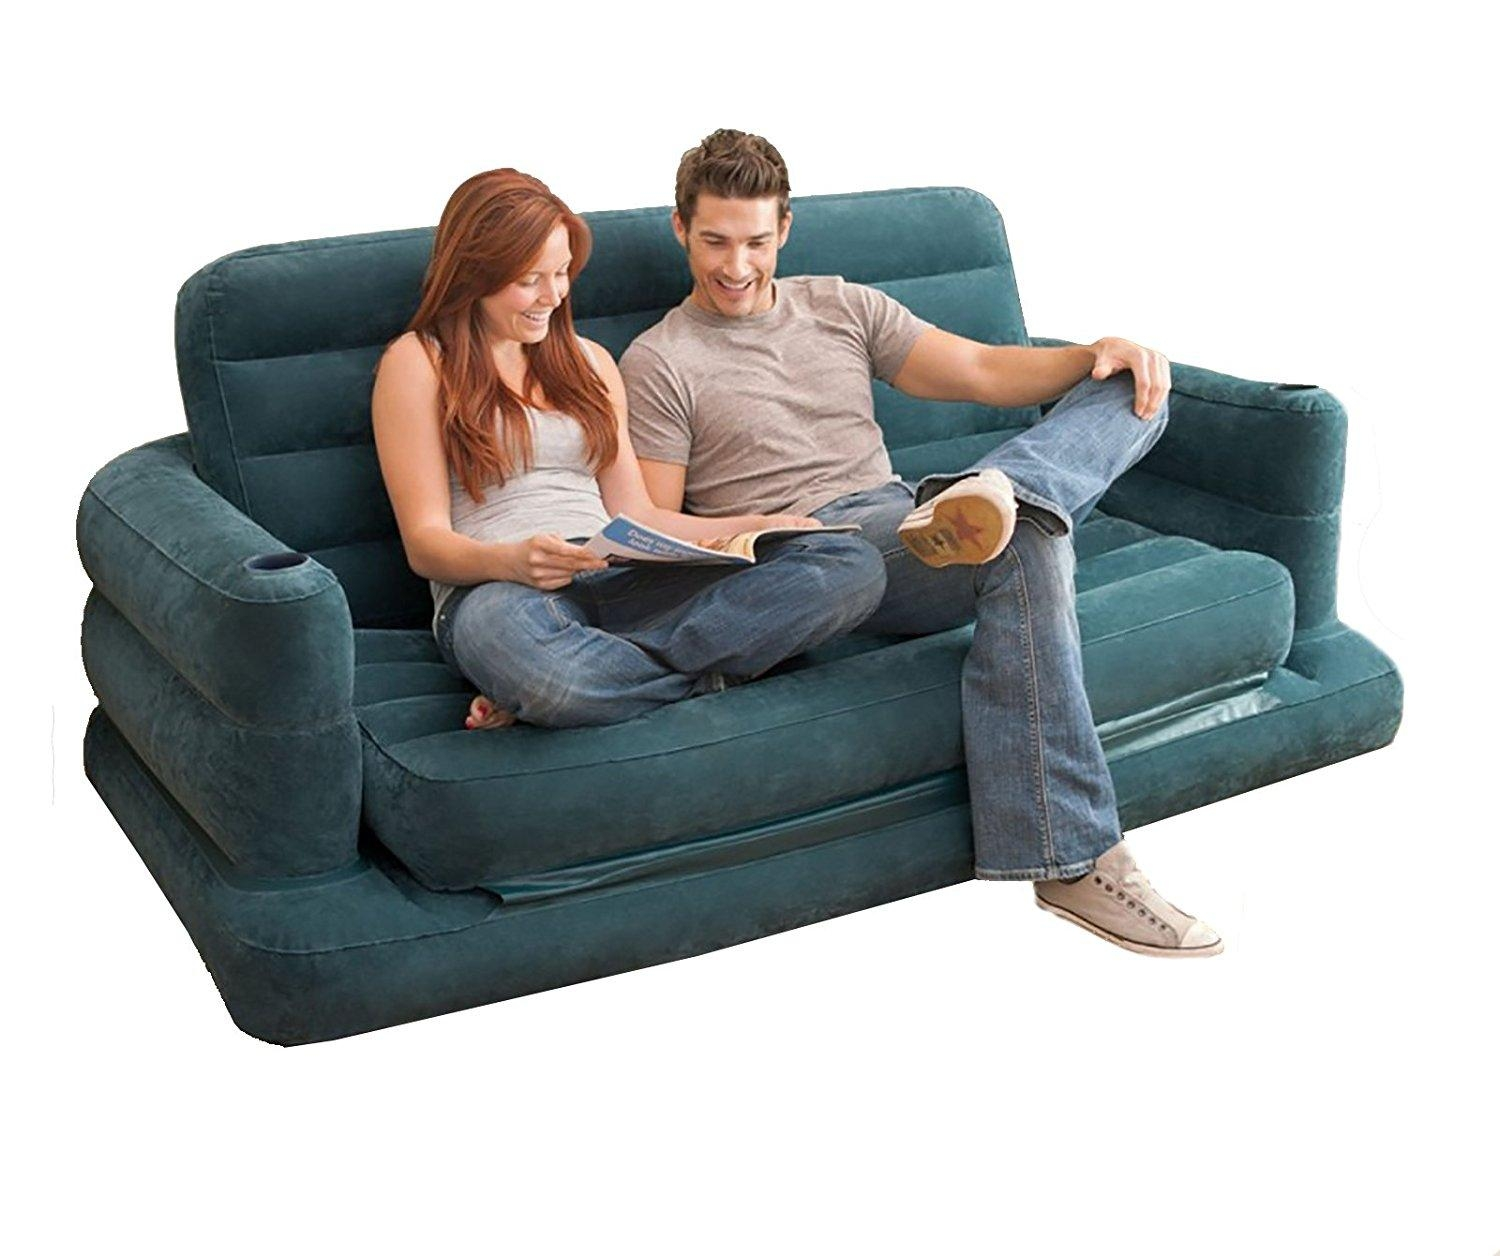 intex inflatable sofa kmart mckinley leather 5194 20 43 choices of sofas ideas